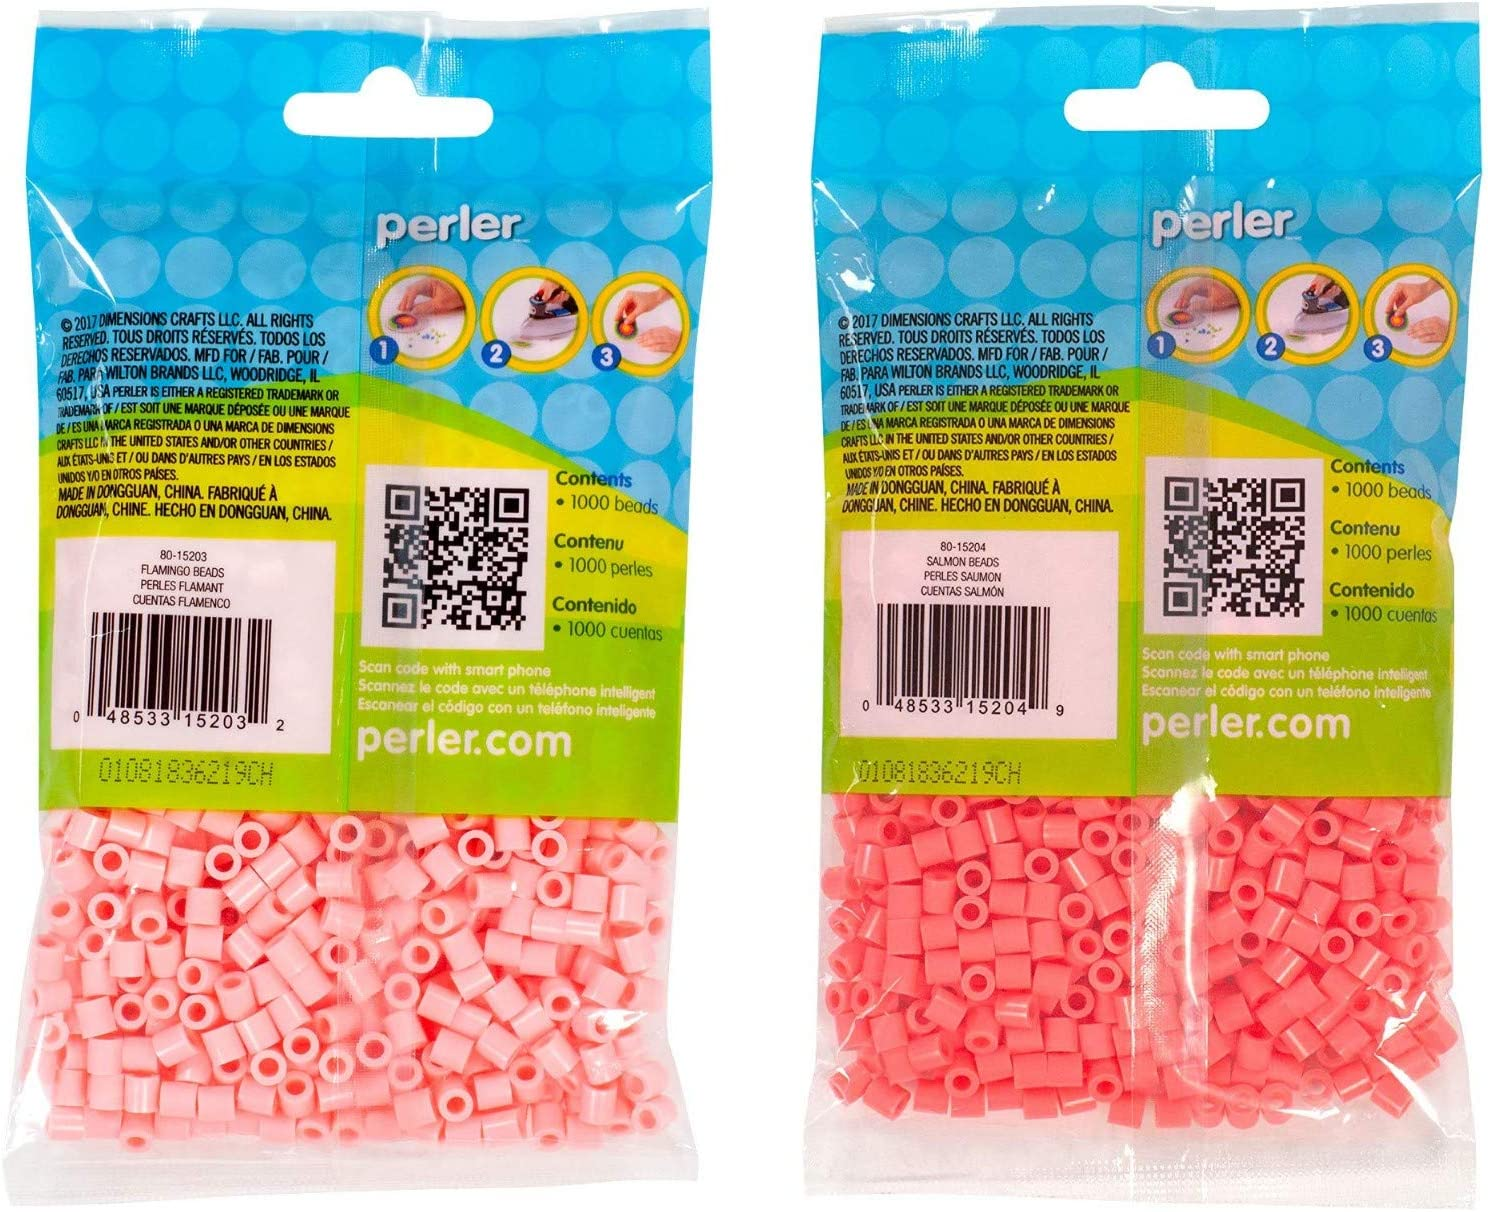 2 Pack Perler Bead Bag 1000 Bundle of Toasted Marshmallow and Fawn